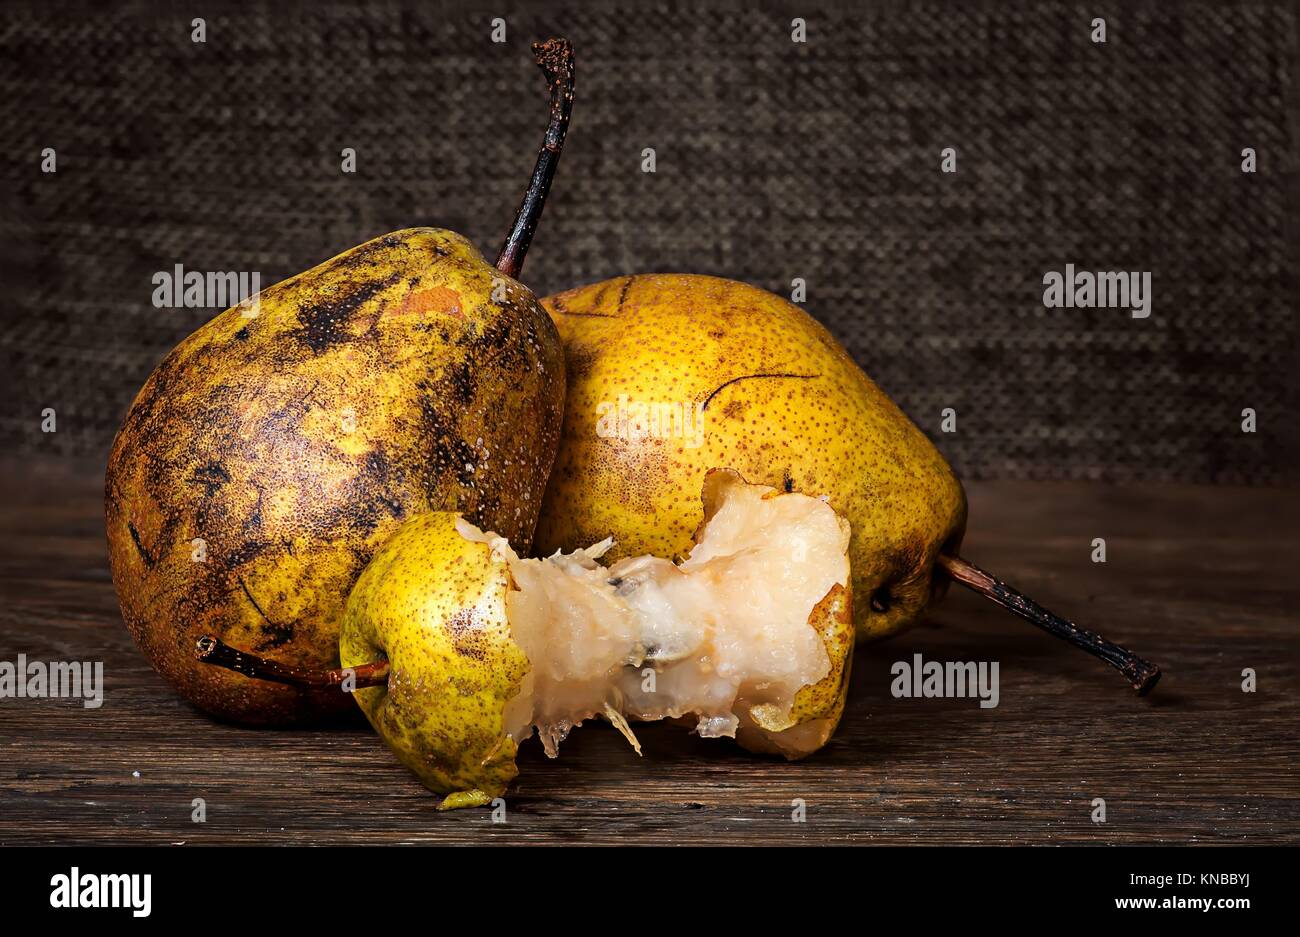 Two pears and stub on wooden table background sacking. - Stock Image